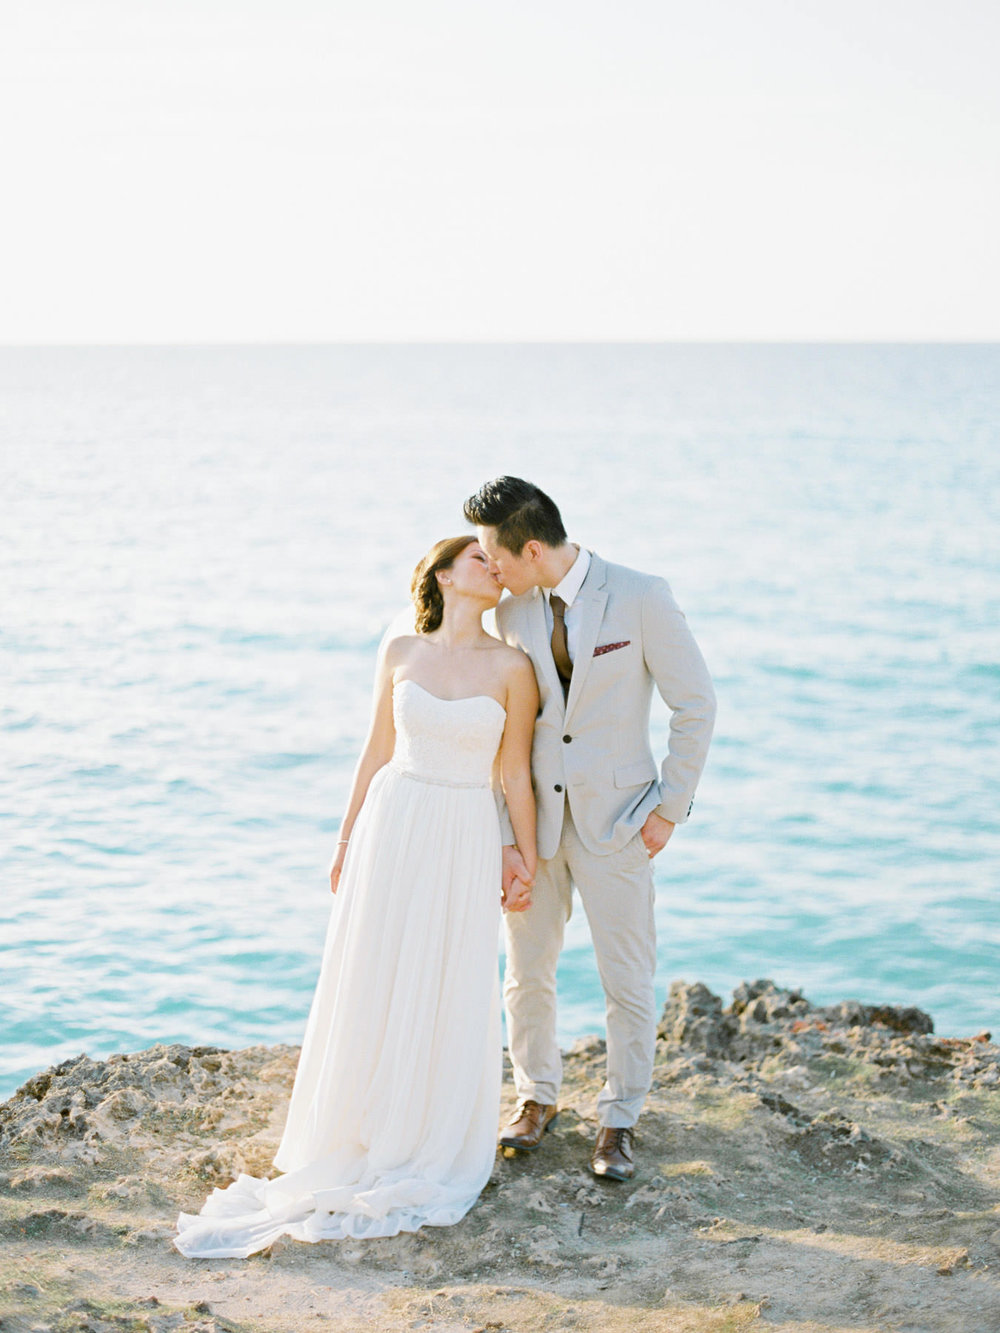 Cuba destination wedding photography